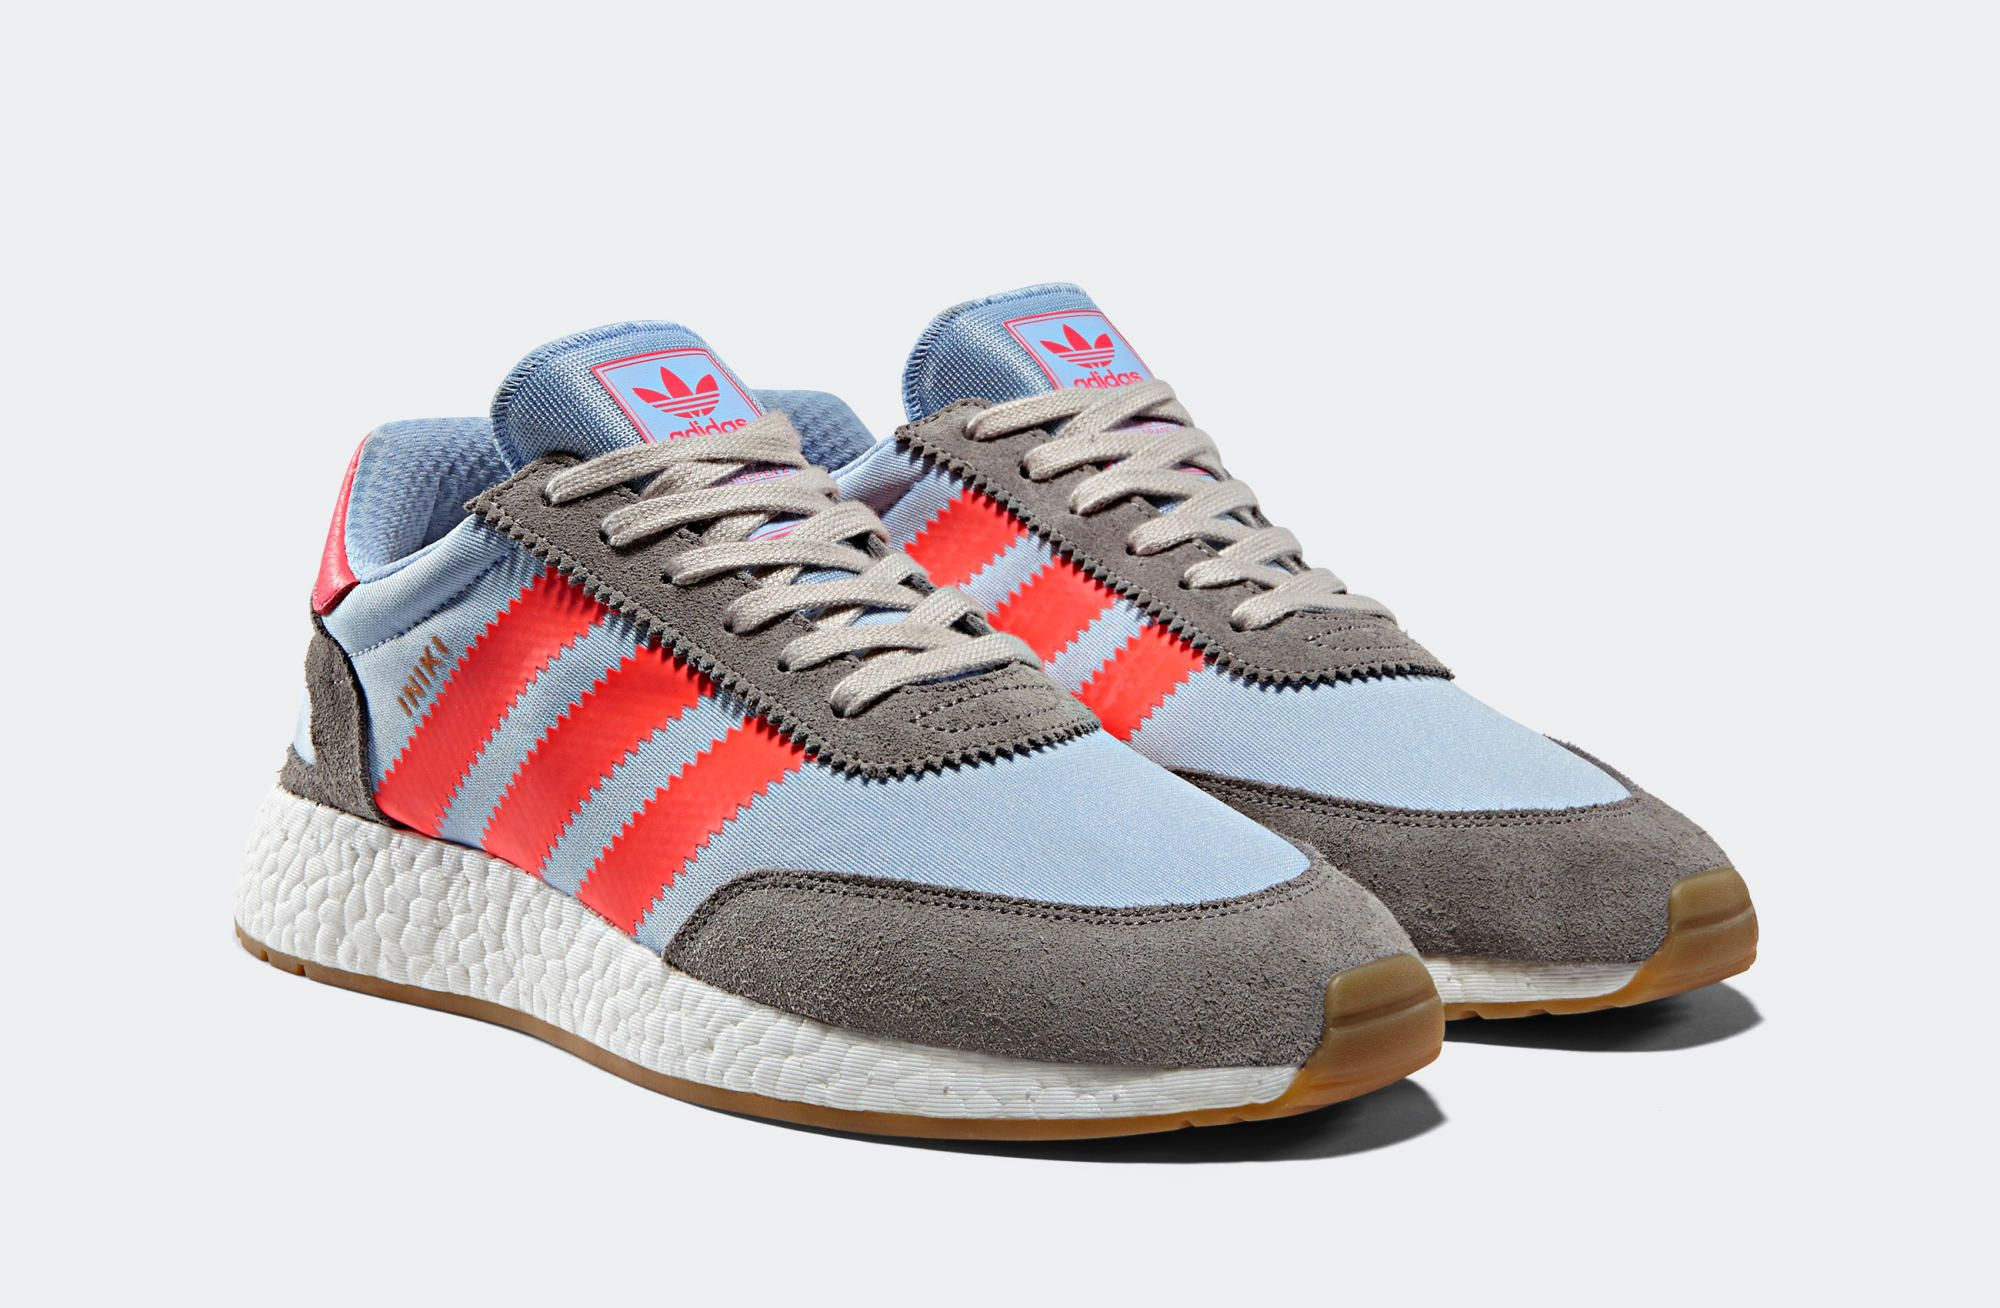 dd6e5786d4fcb0 adidas Originals  continues to expand the lineup for its new Iniki Runner.  The modern retro silhouette is set to launch in new colorways for both men  and ...